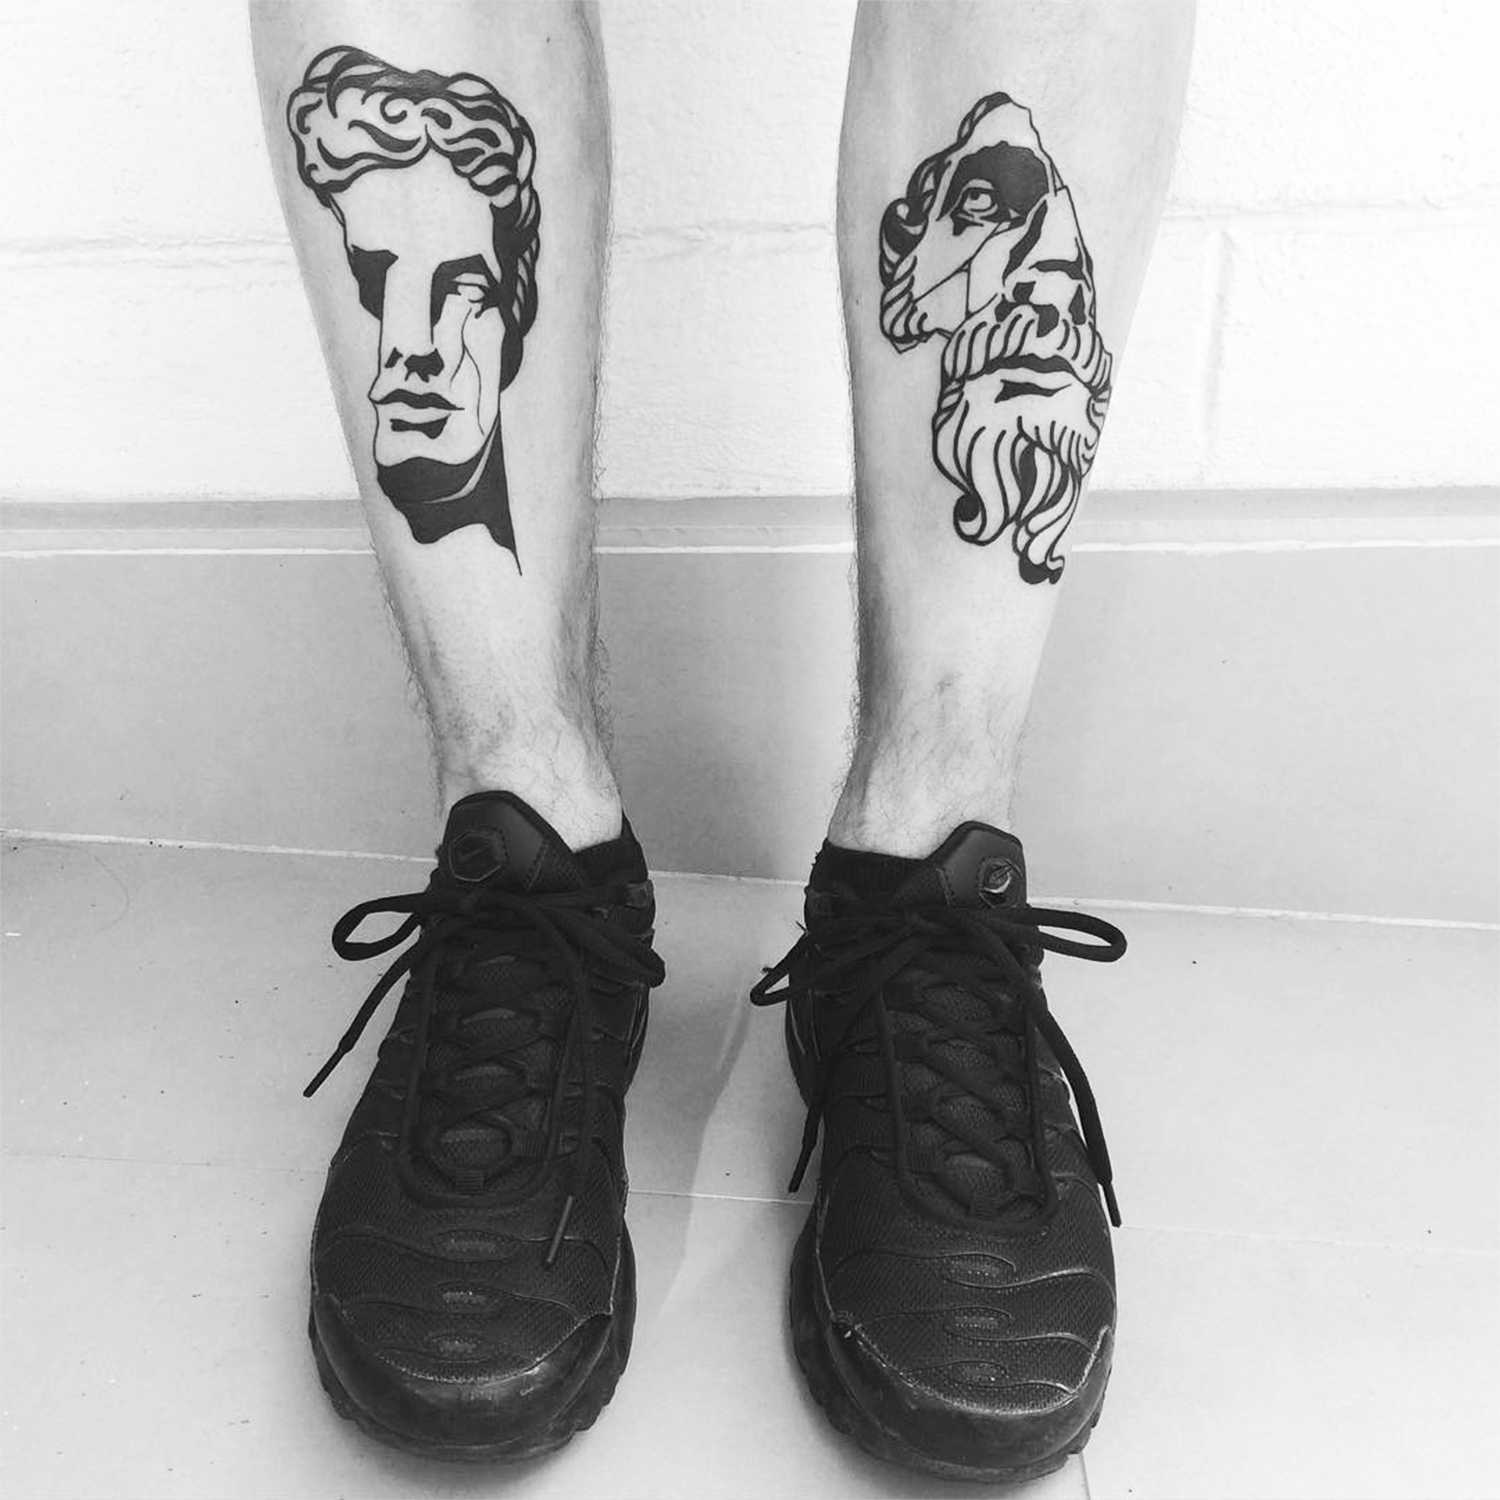 classical sculpture portrait tattoos on legs